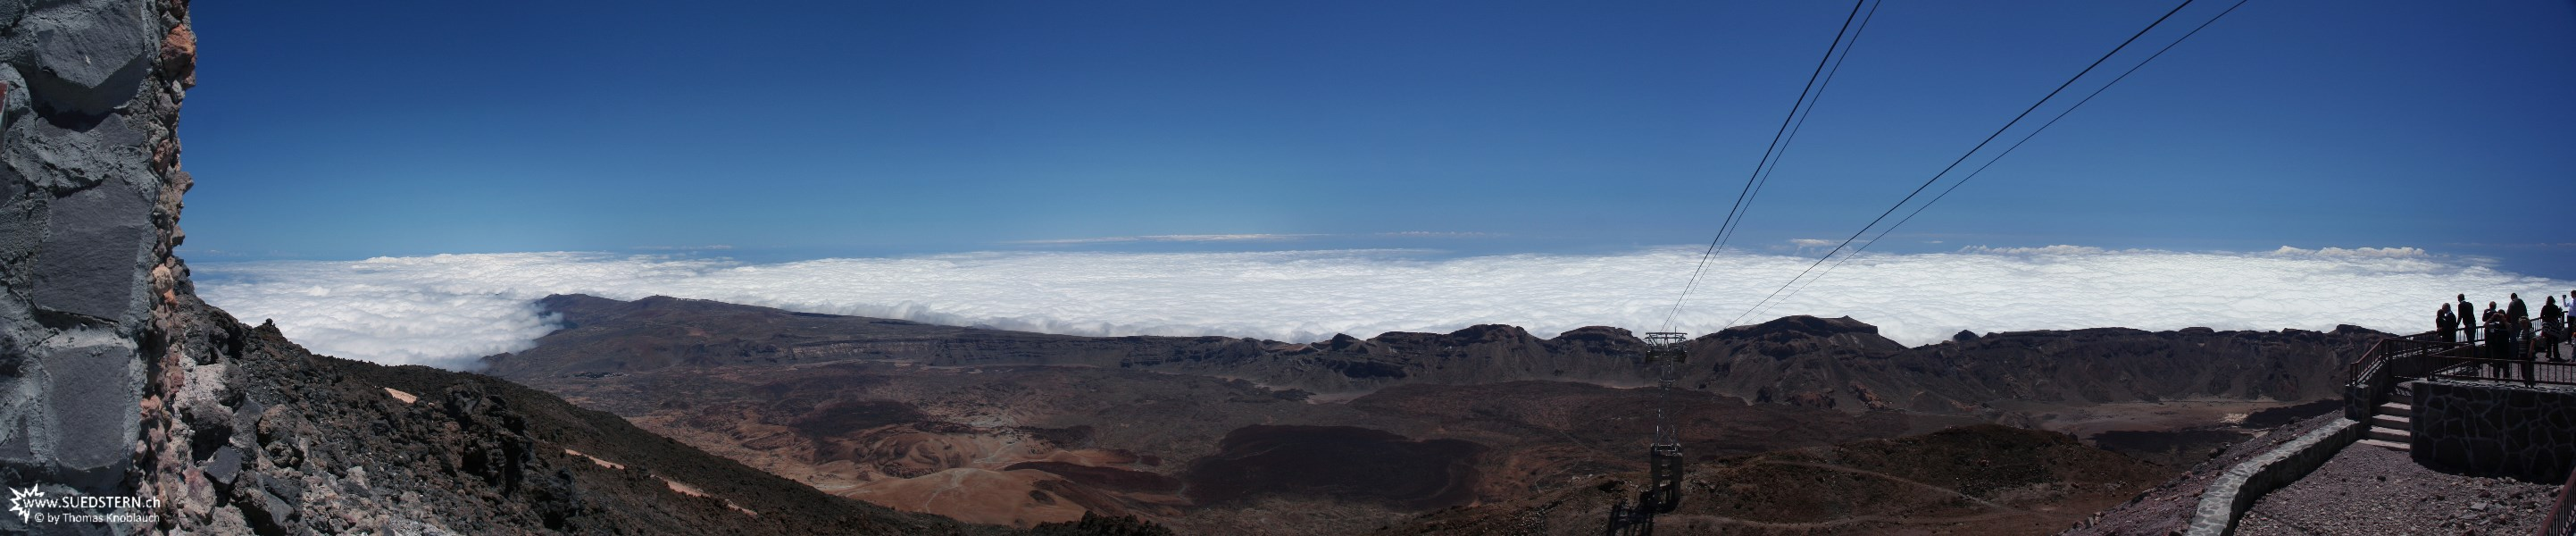 2007-09-06 - 09 - Teneriffa, panorama direction south from Teide mountain station altitude 3500m